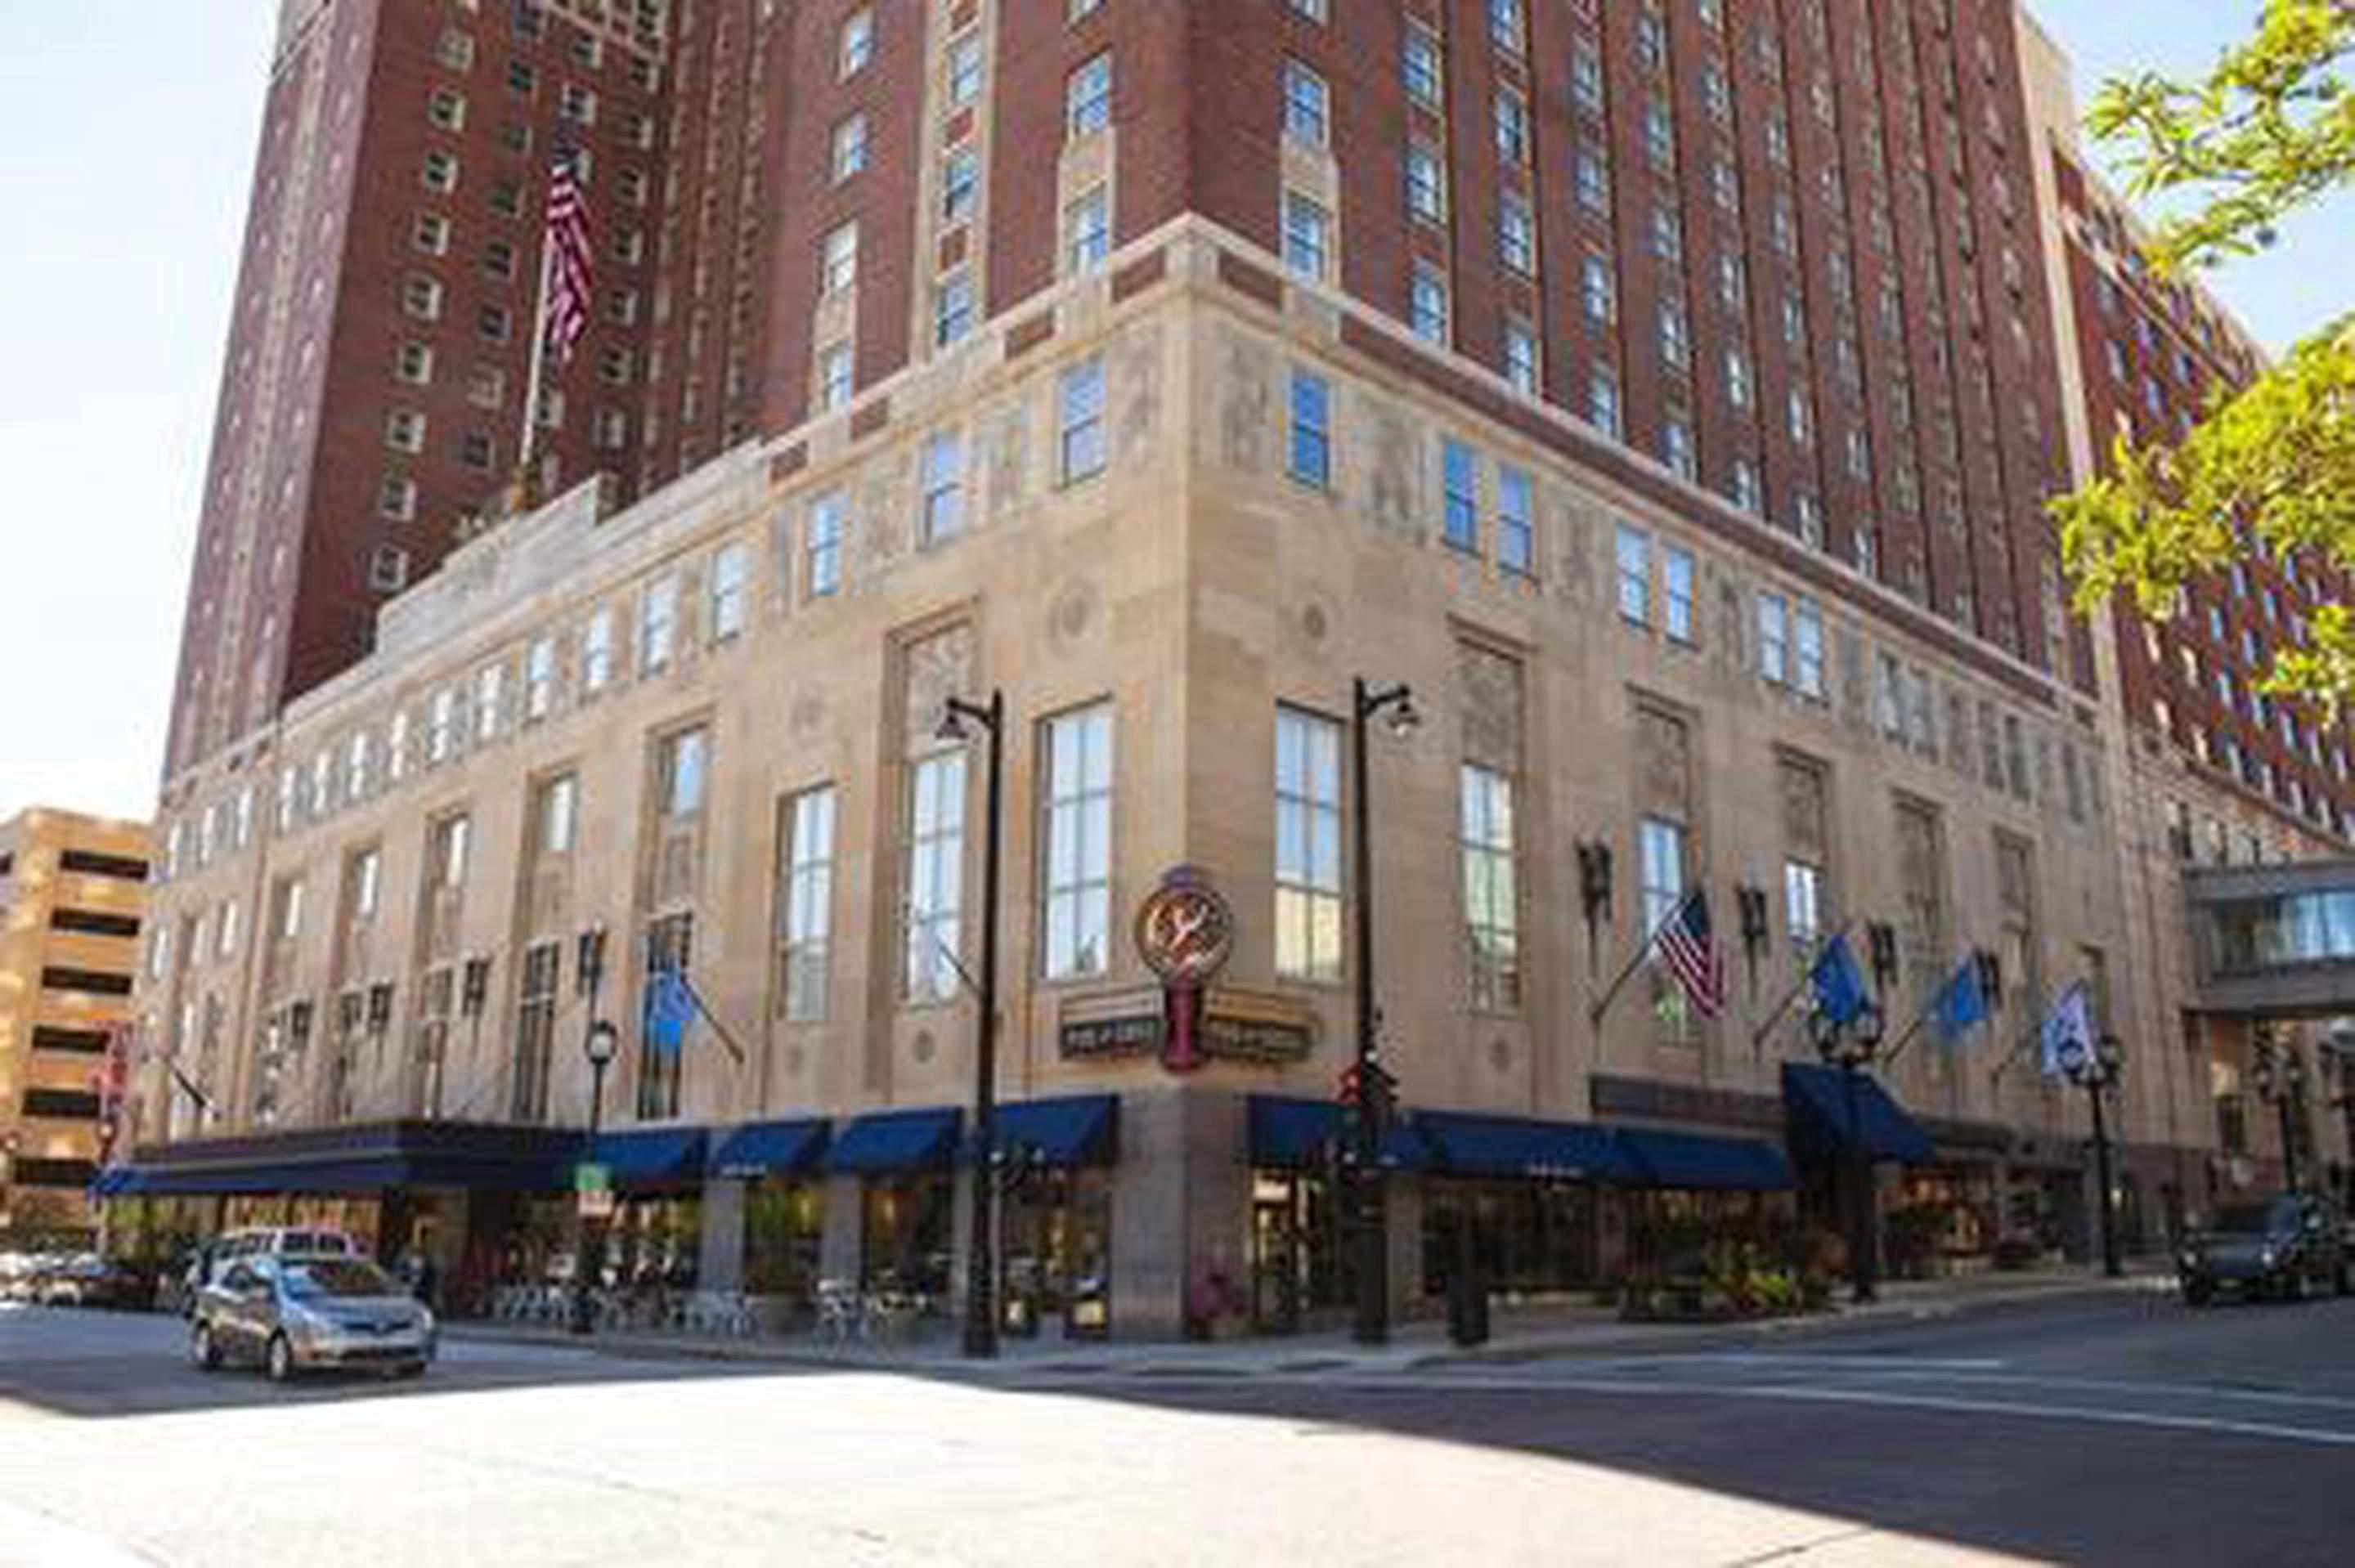 Milwaukee HistorySince its opening in 1928 the  Hilton Milwaukee City Center's distinctive Art Deco architecture has been an important part of the Milwaukee skyline.